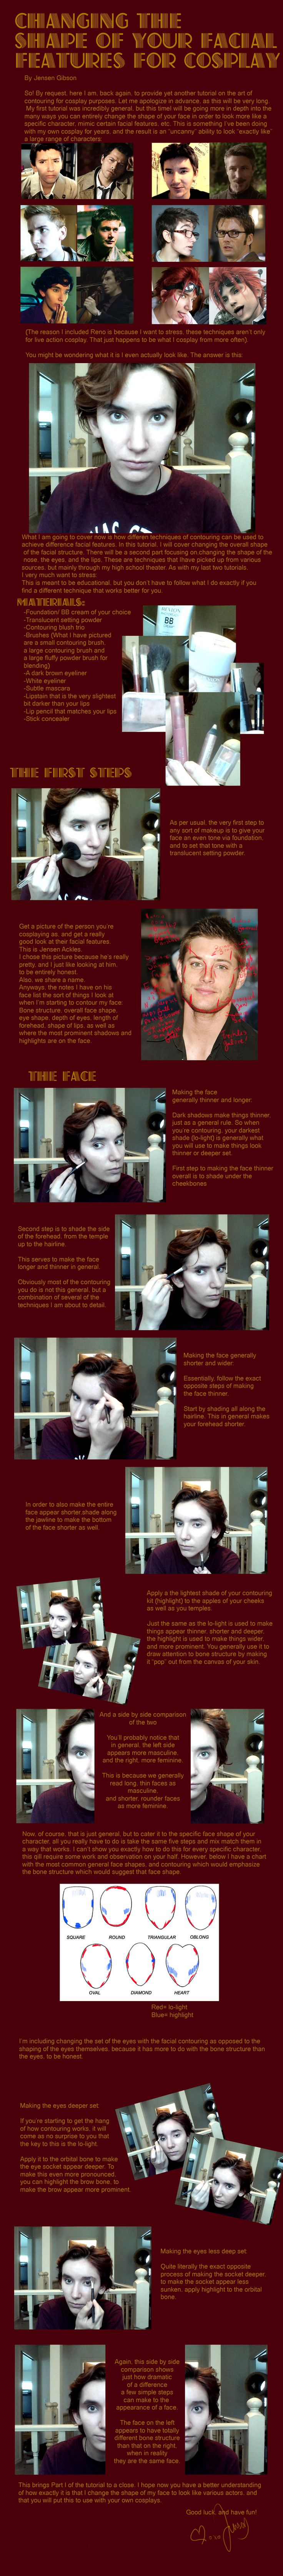 Changing the shape of your facial features, pt 1 by Sock-Monkey-Renegade.deviantart.com on @deviantART